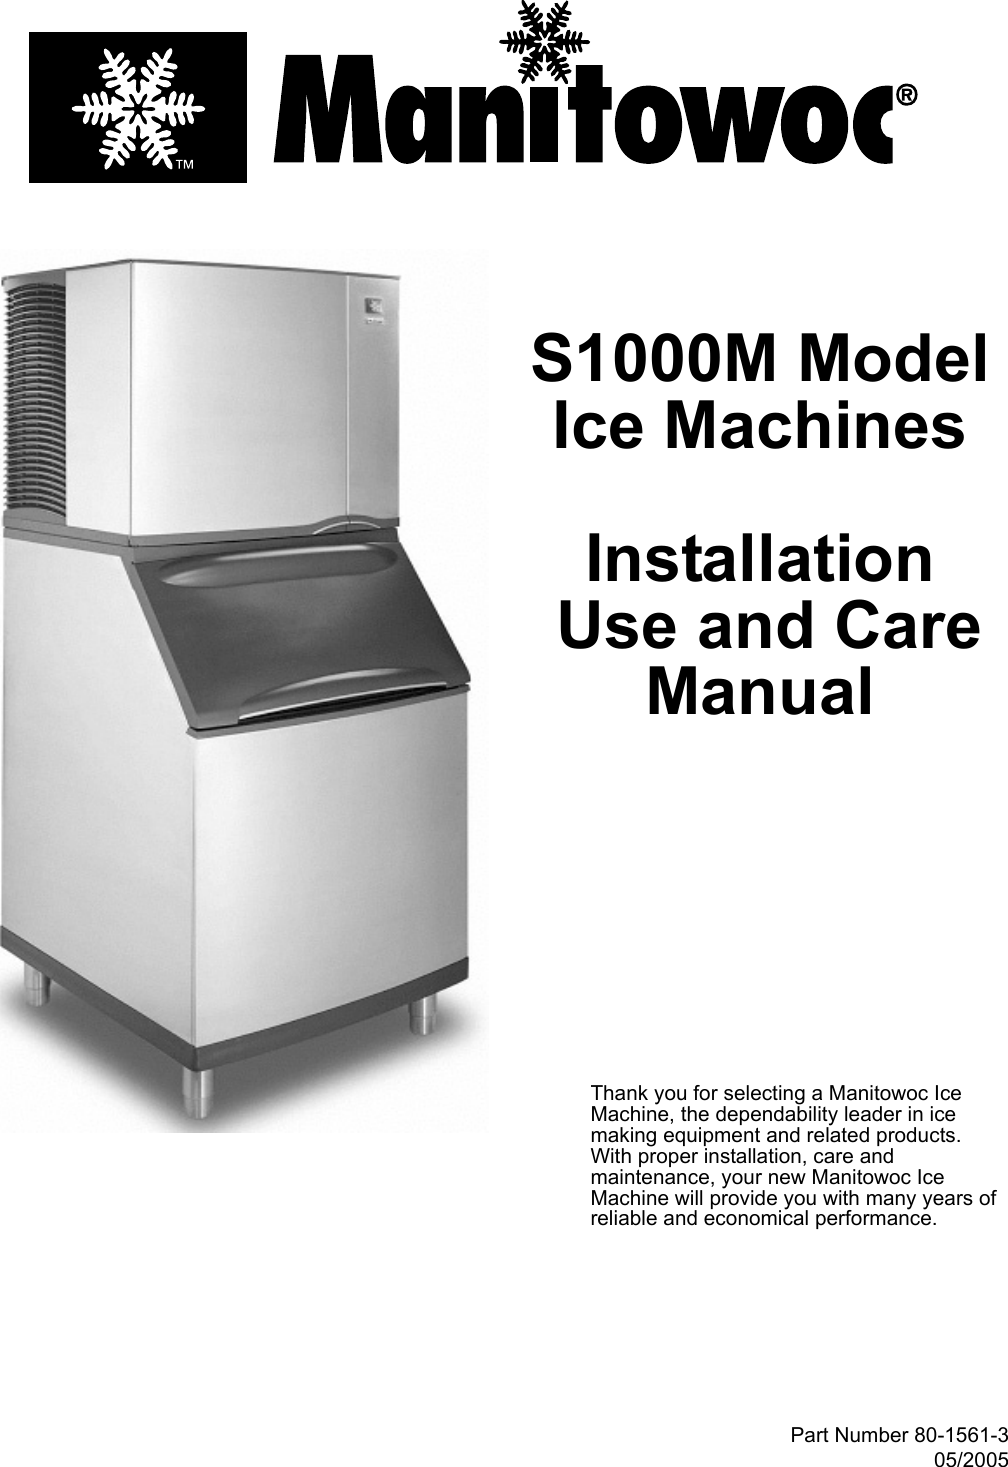 Manitowoc Ice S1000m Users Manual S1000m Uc 8015613 Manual Guide